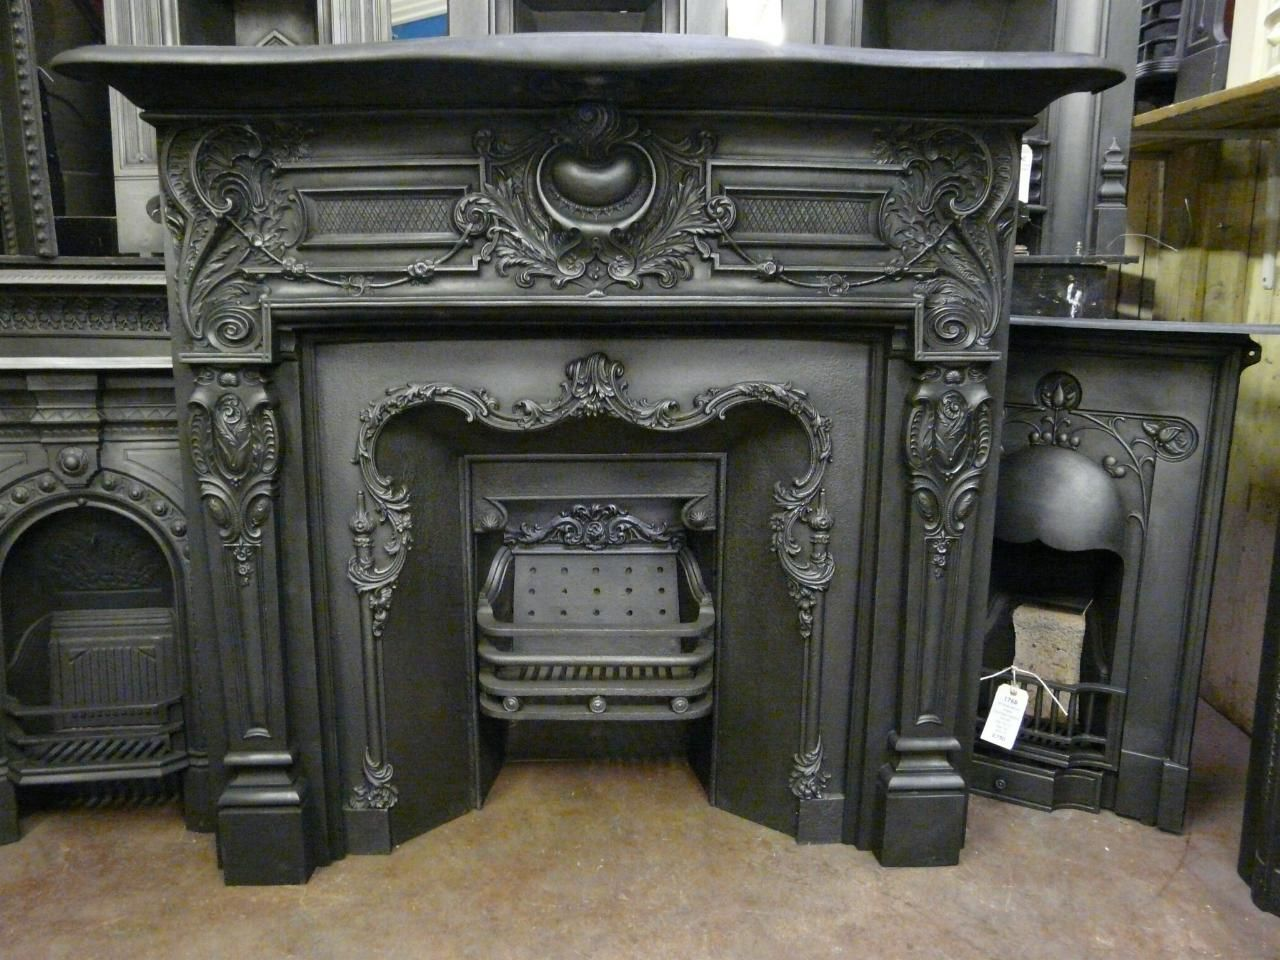 Fireplace surrounds and Fire surround